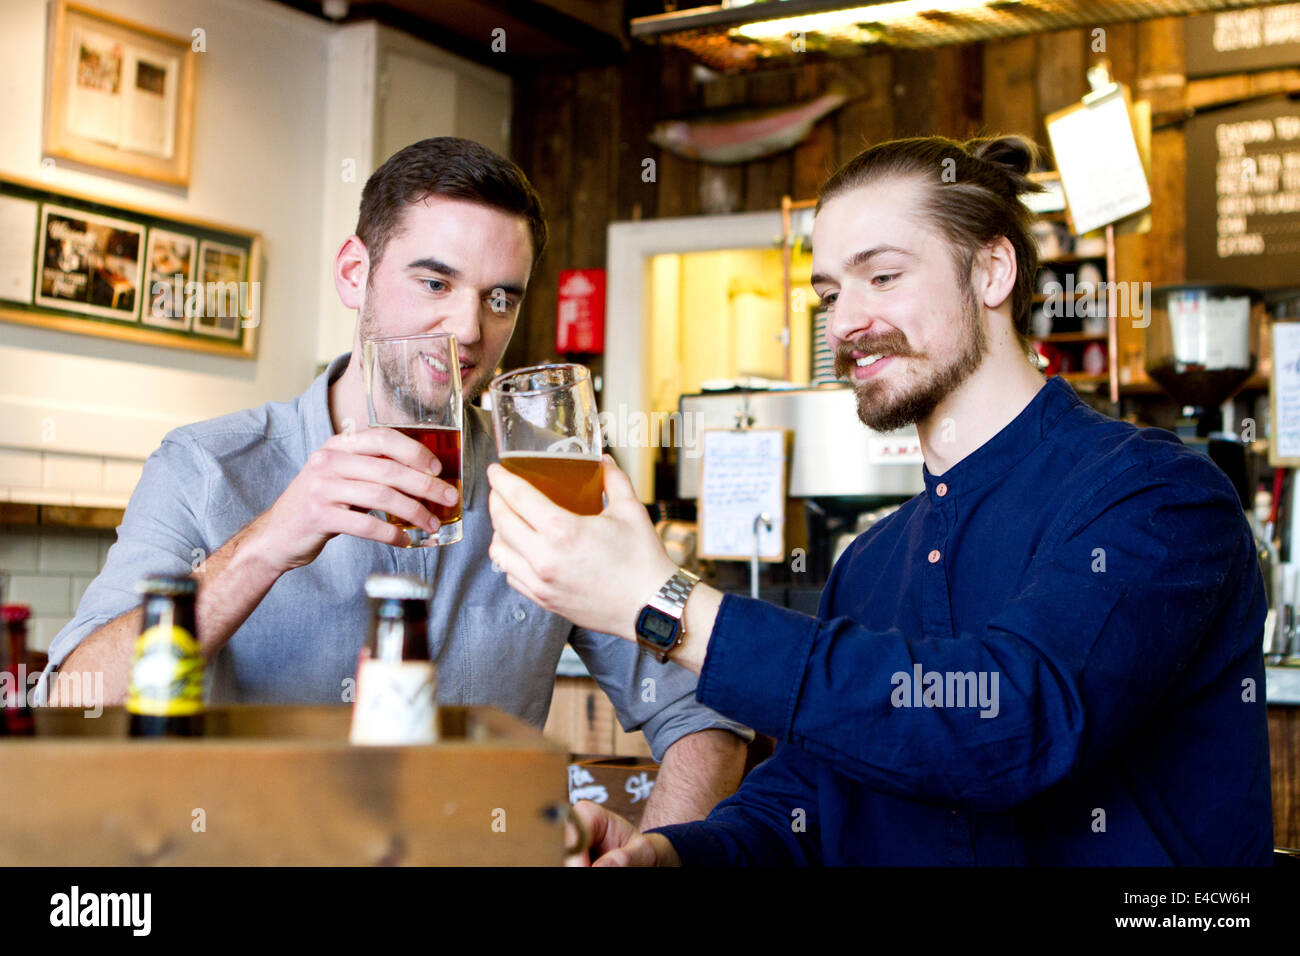 Young men toasting with beer in pub, Dorset, Bournemouth, England - Stock Image